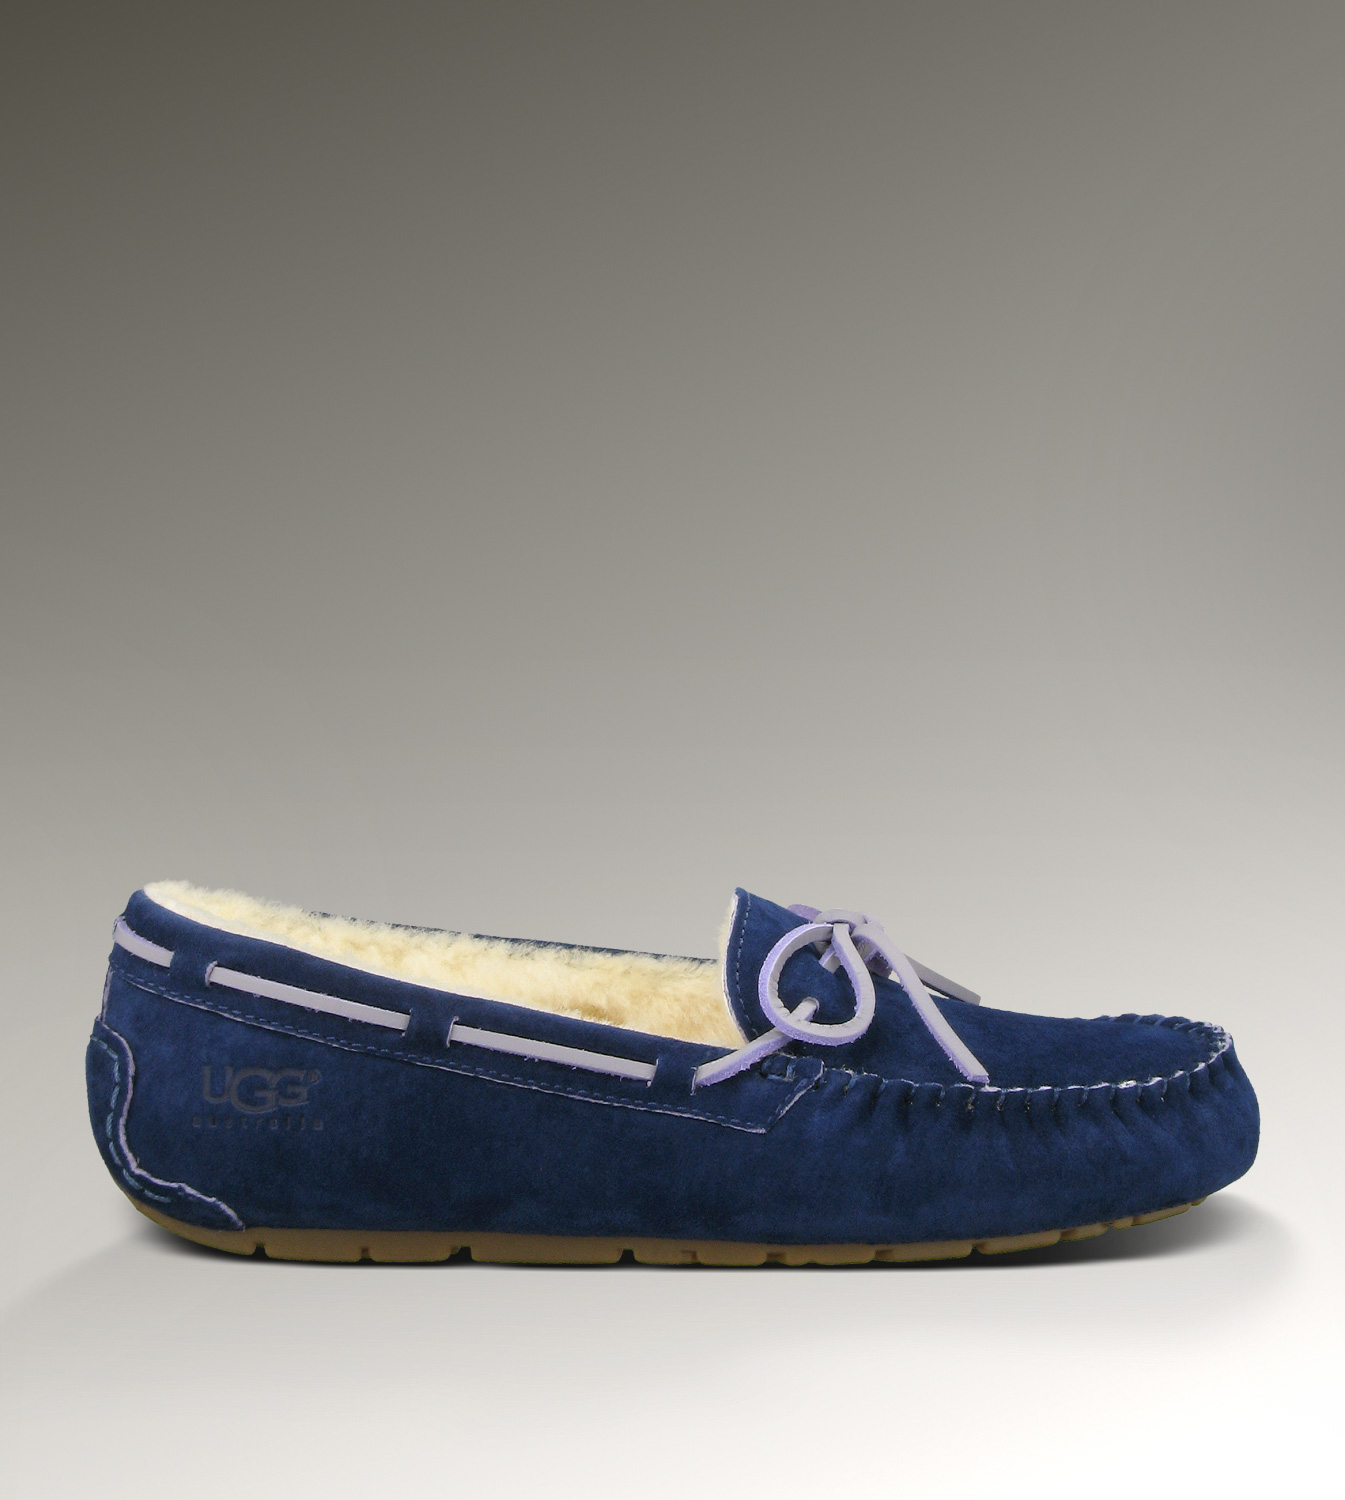 UGG Dakota 5612 Navy Slippers